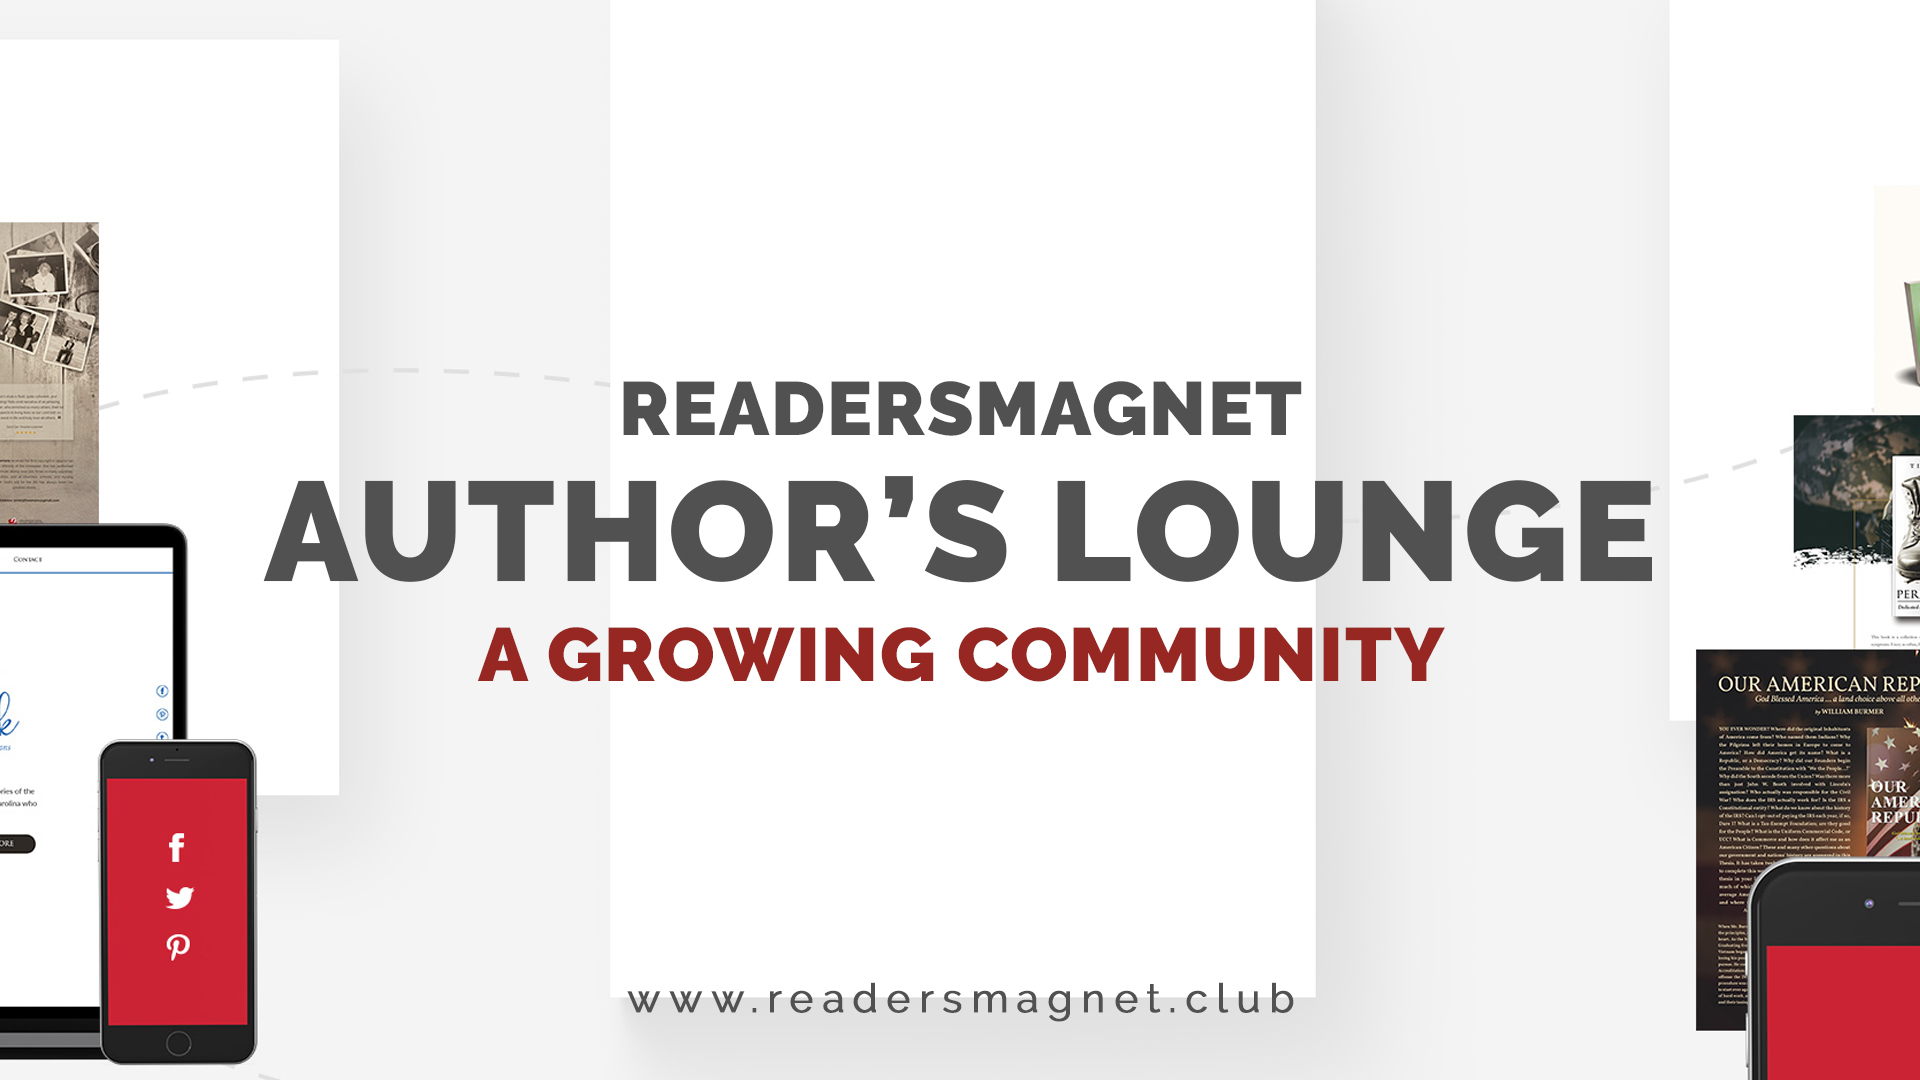 ReadersMagnet Authors' Lounge A Growing Community